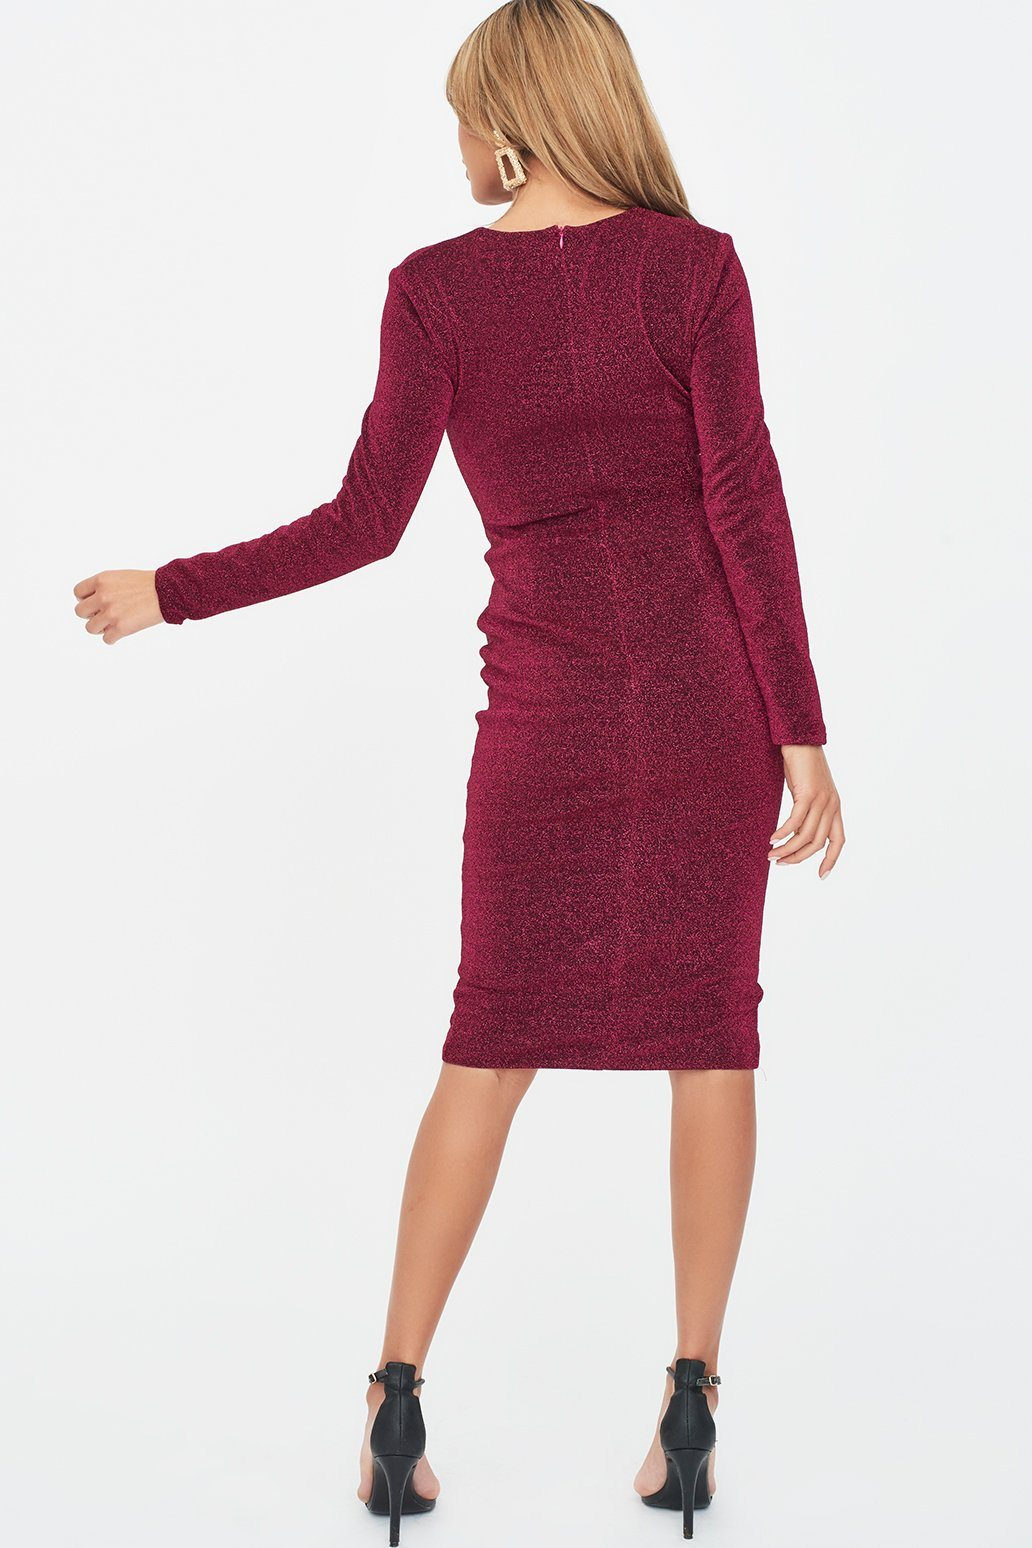 Button Detail Glitter Lurex Midi Dress in Magenta Pink